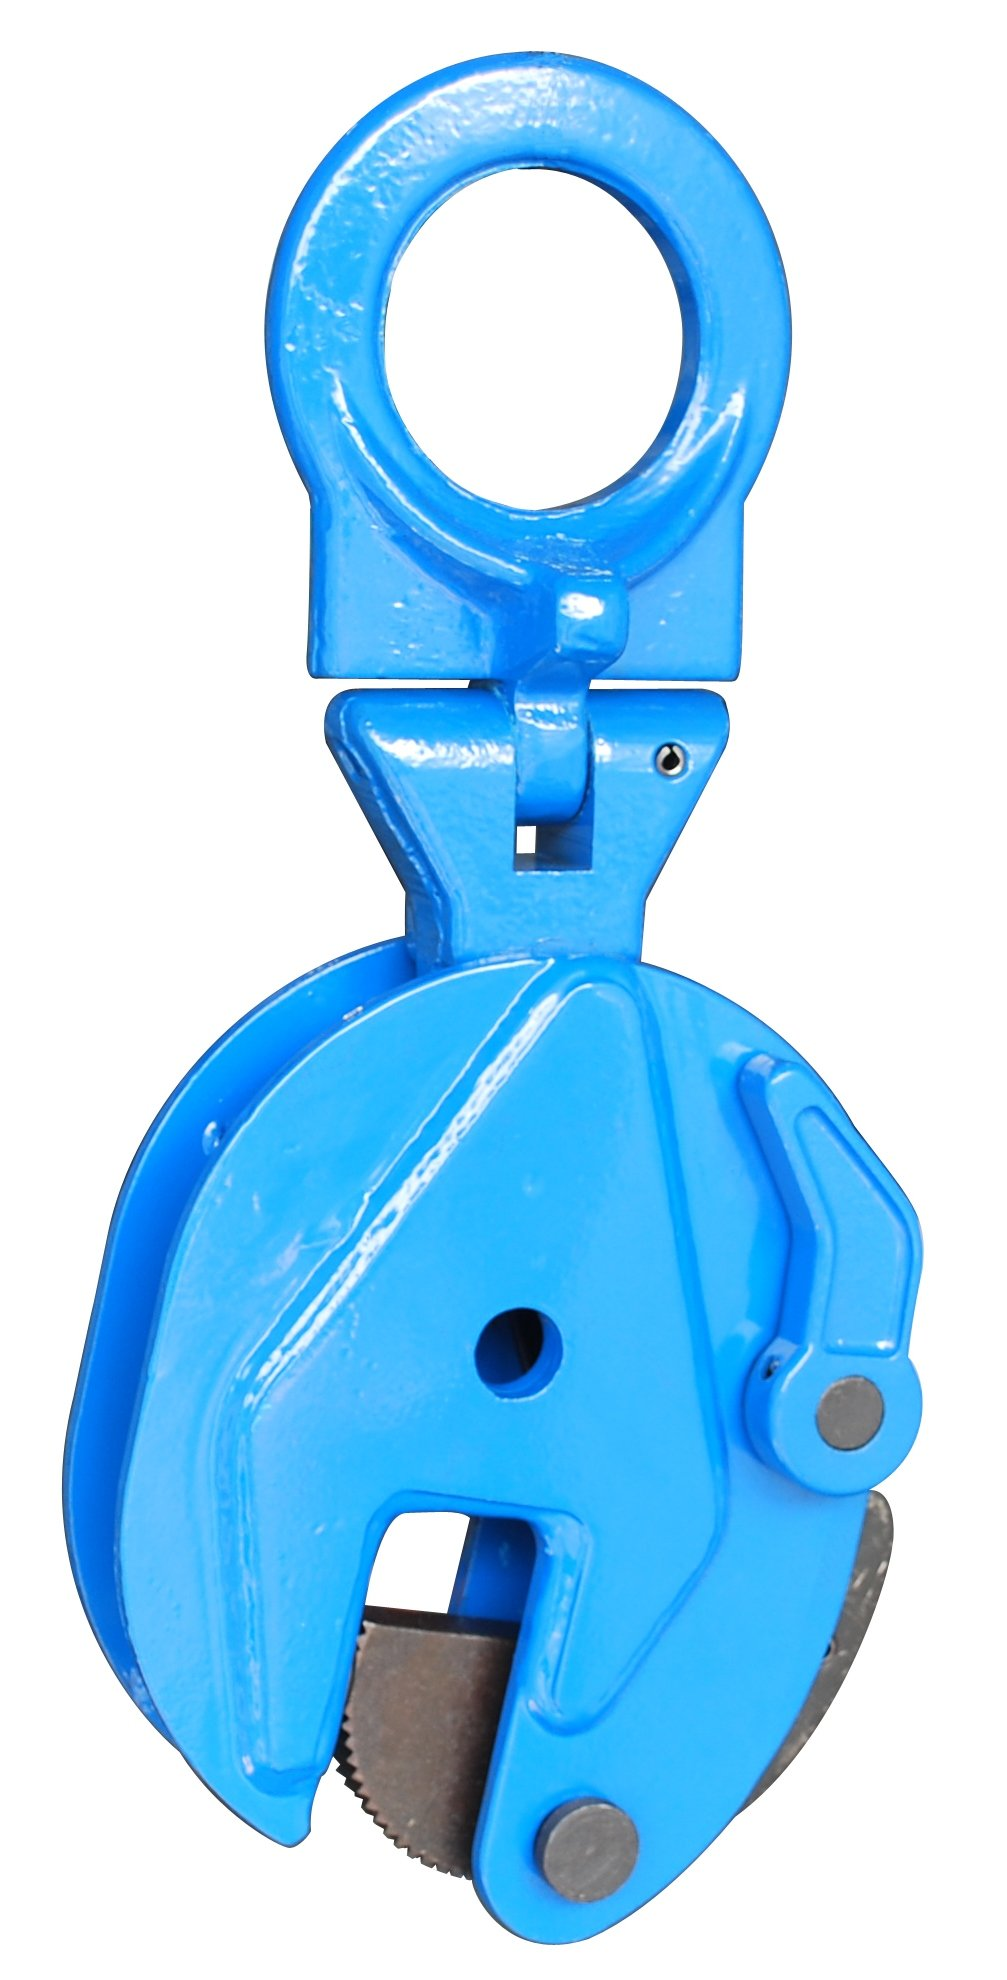 i-Lift Equipment ICD0.8 Universal Plate Clamp, 1760 lb Working Load Limit